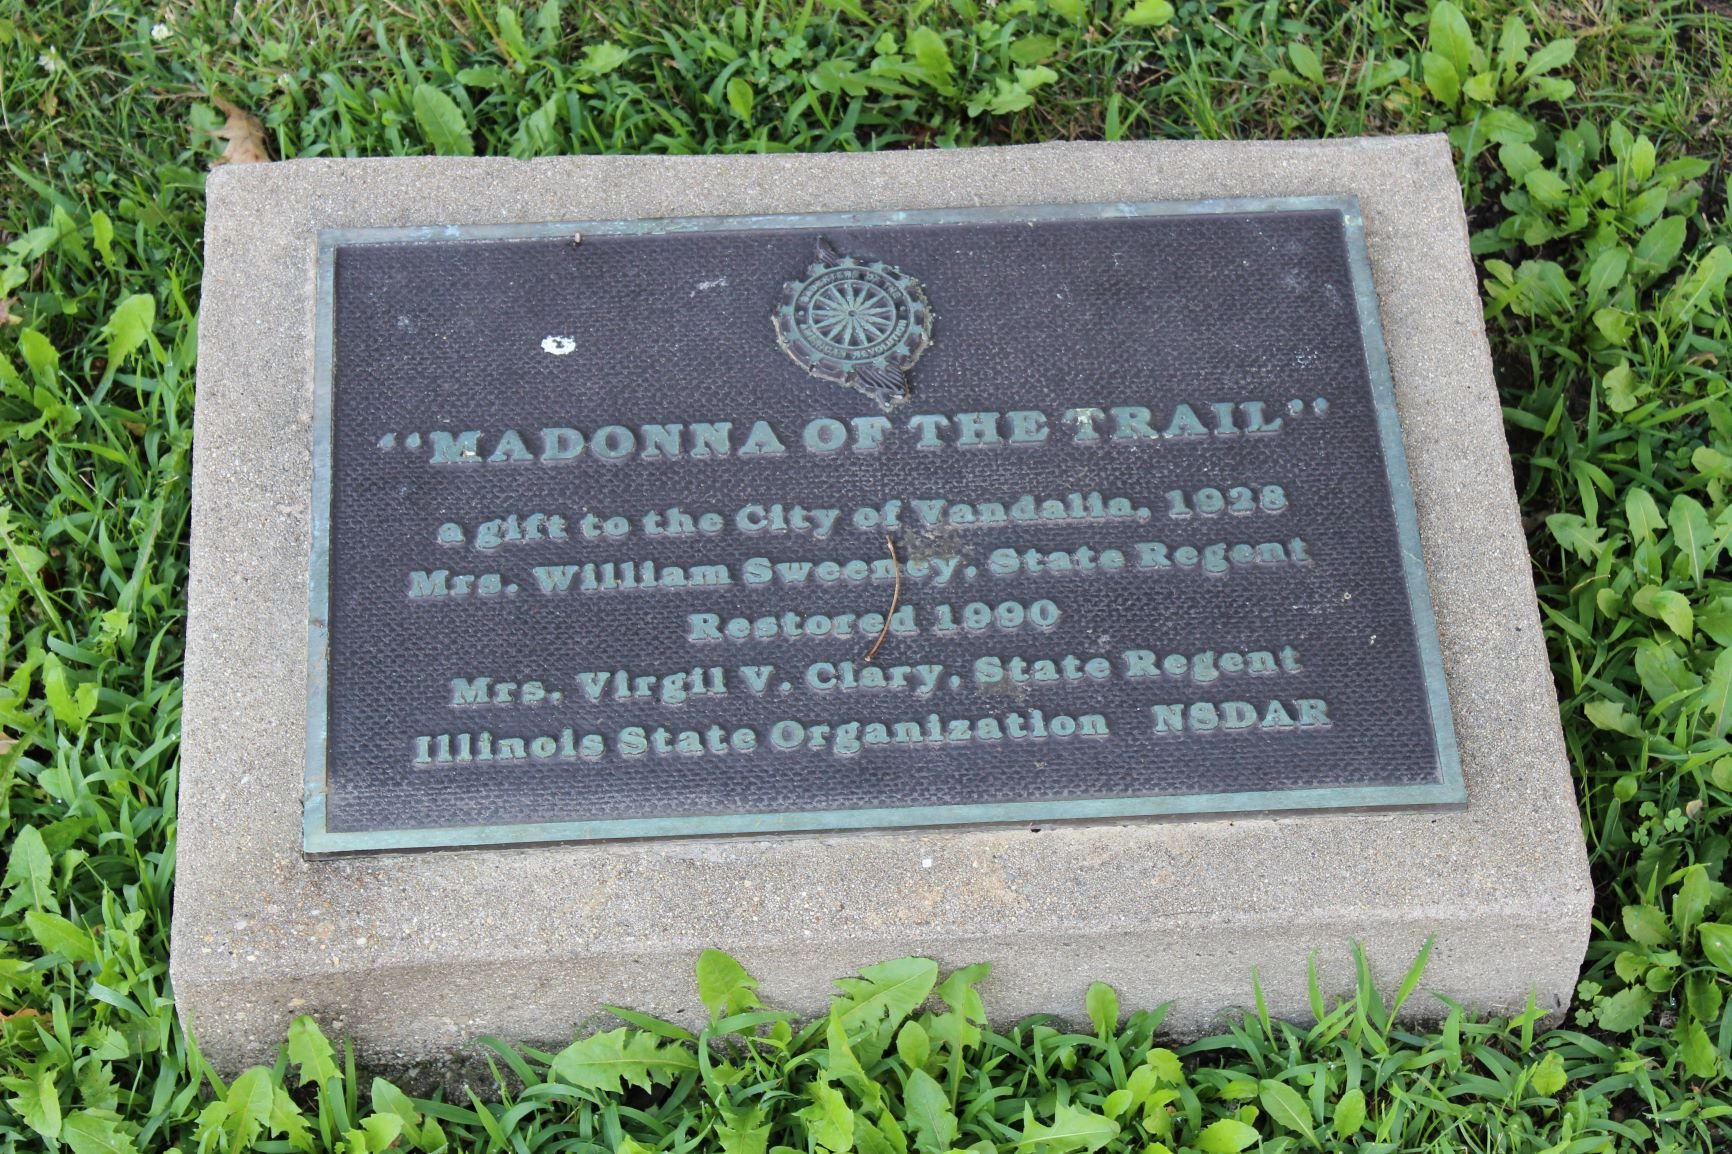 Madonna of the Trail plaque. Photo by Cynthia Prescott.